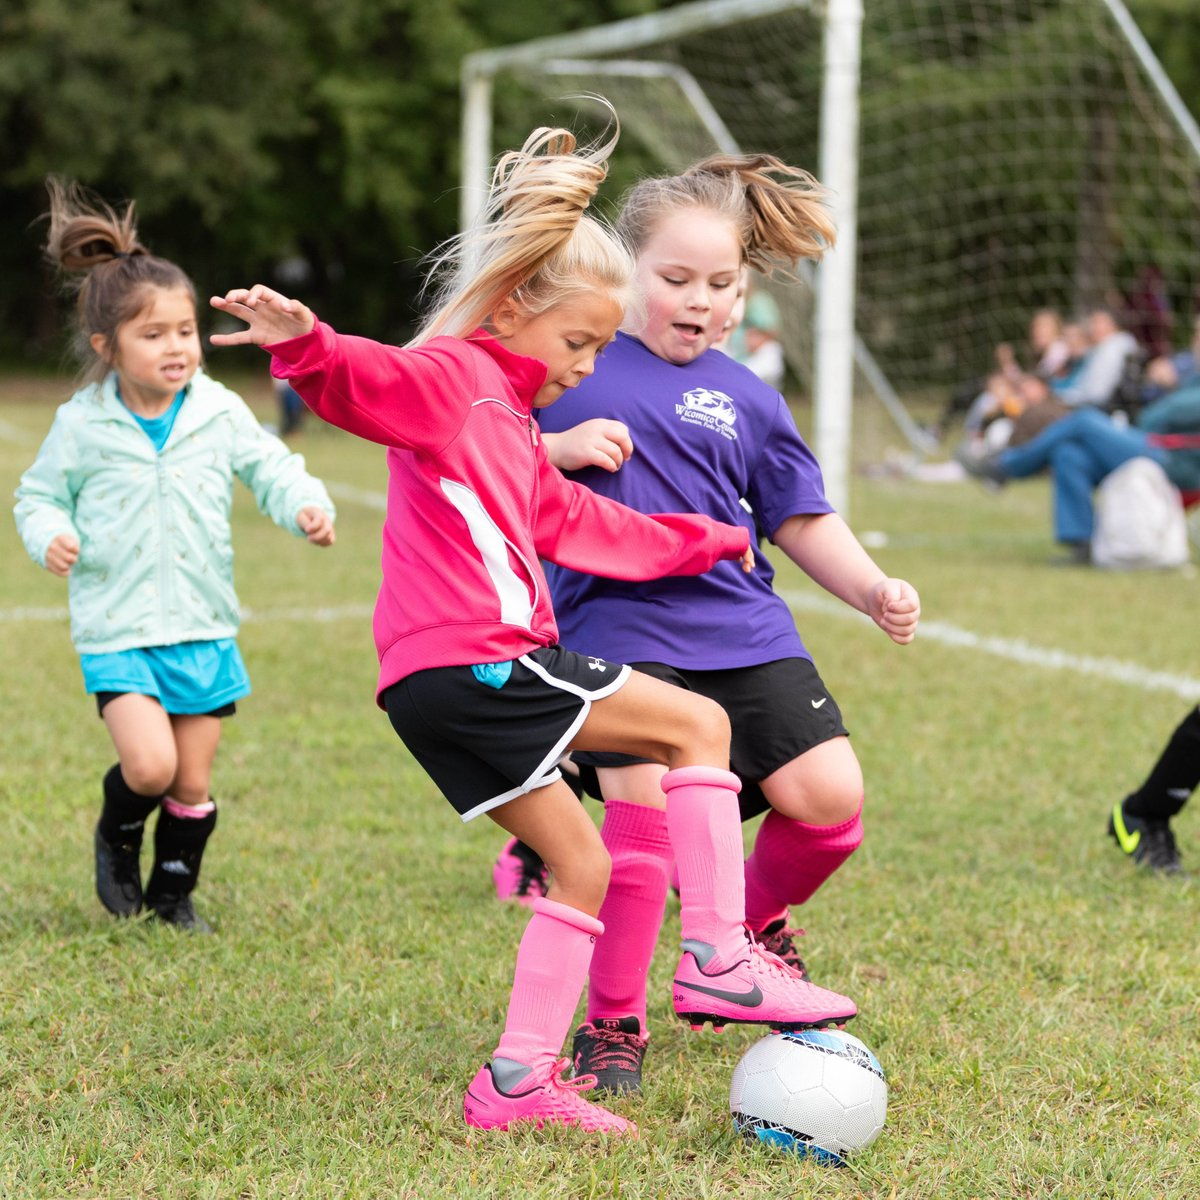 Player's skills are looking sharp at our fall youth soccer programs. ⚽️ #funwicomico